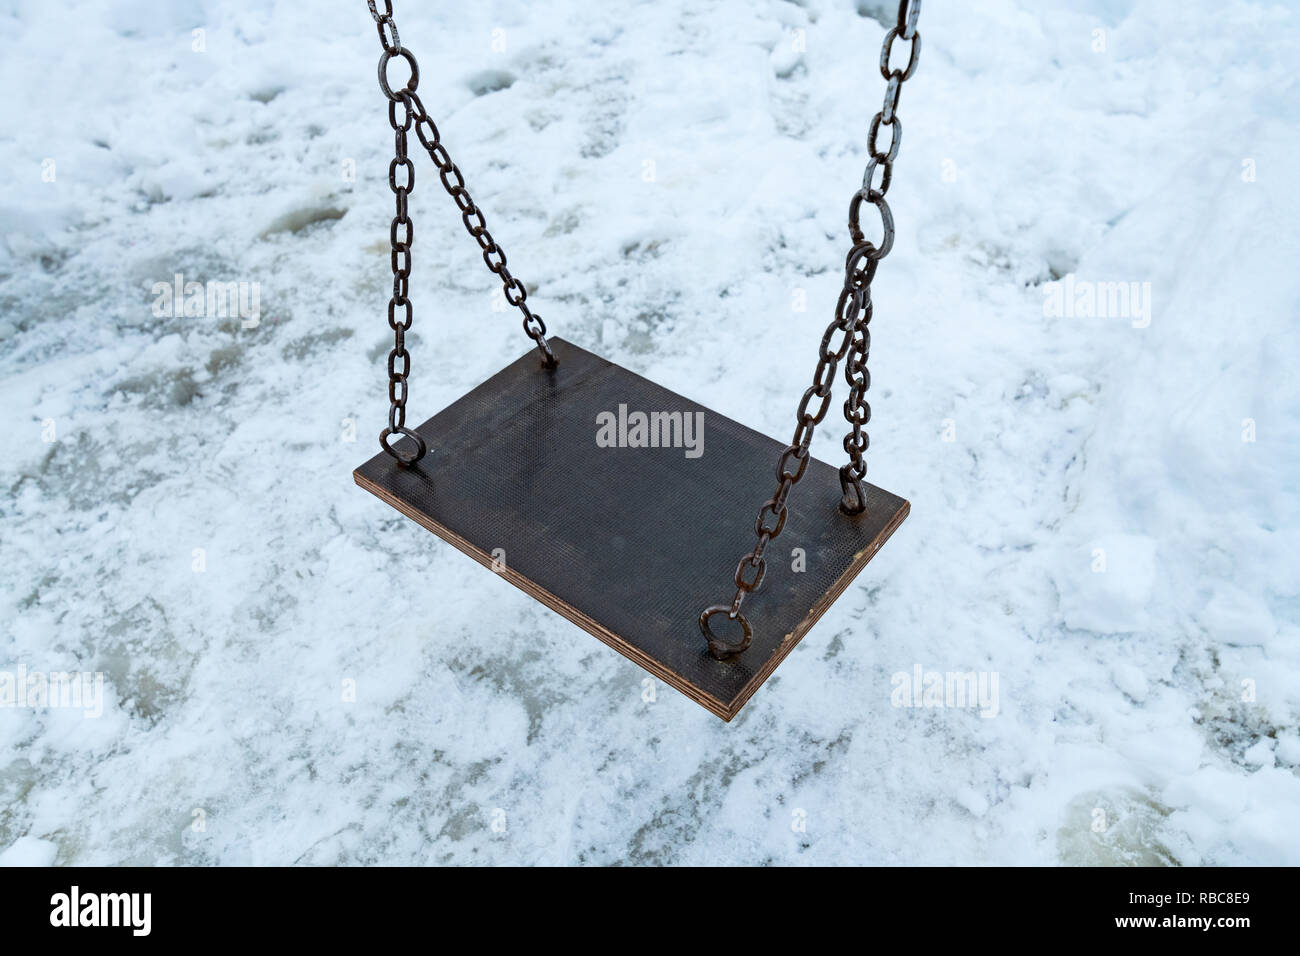 Empty swing in winter with snow covering children's playground - Stock Image